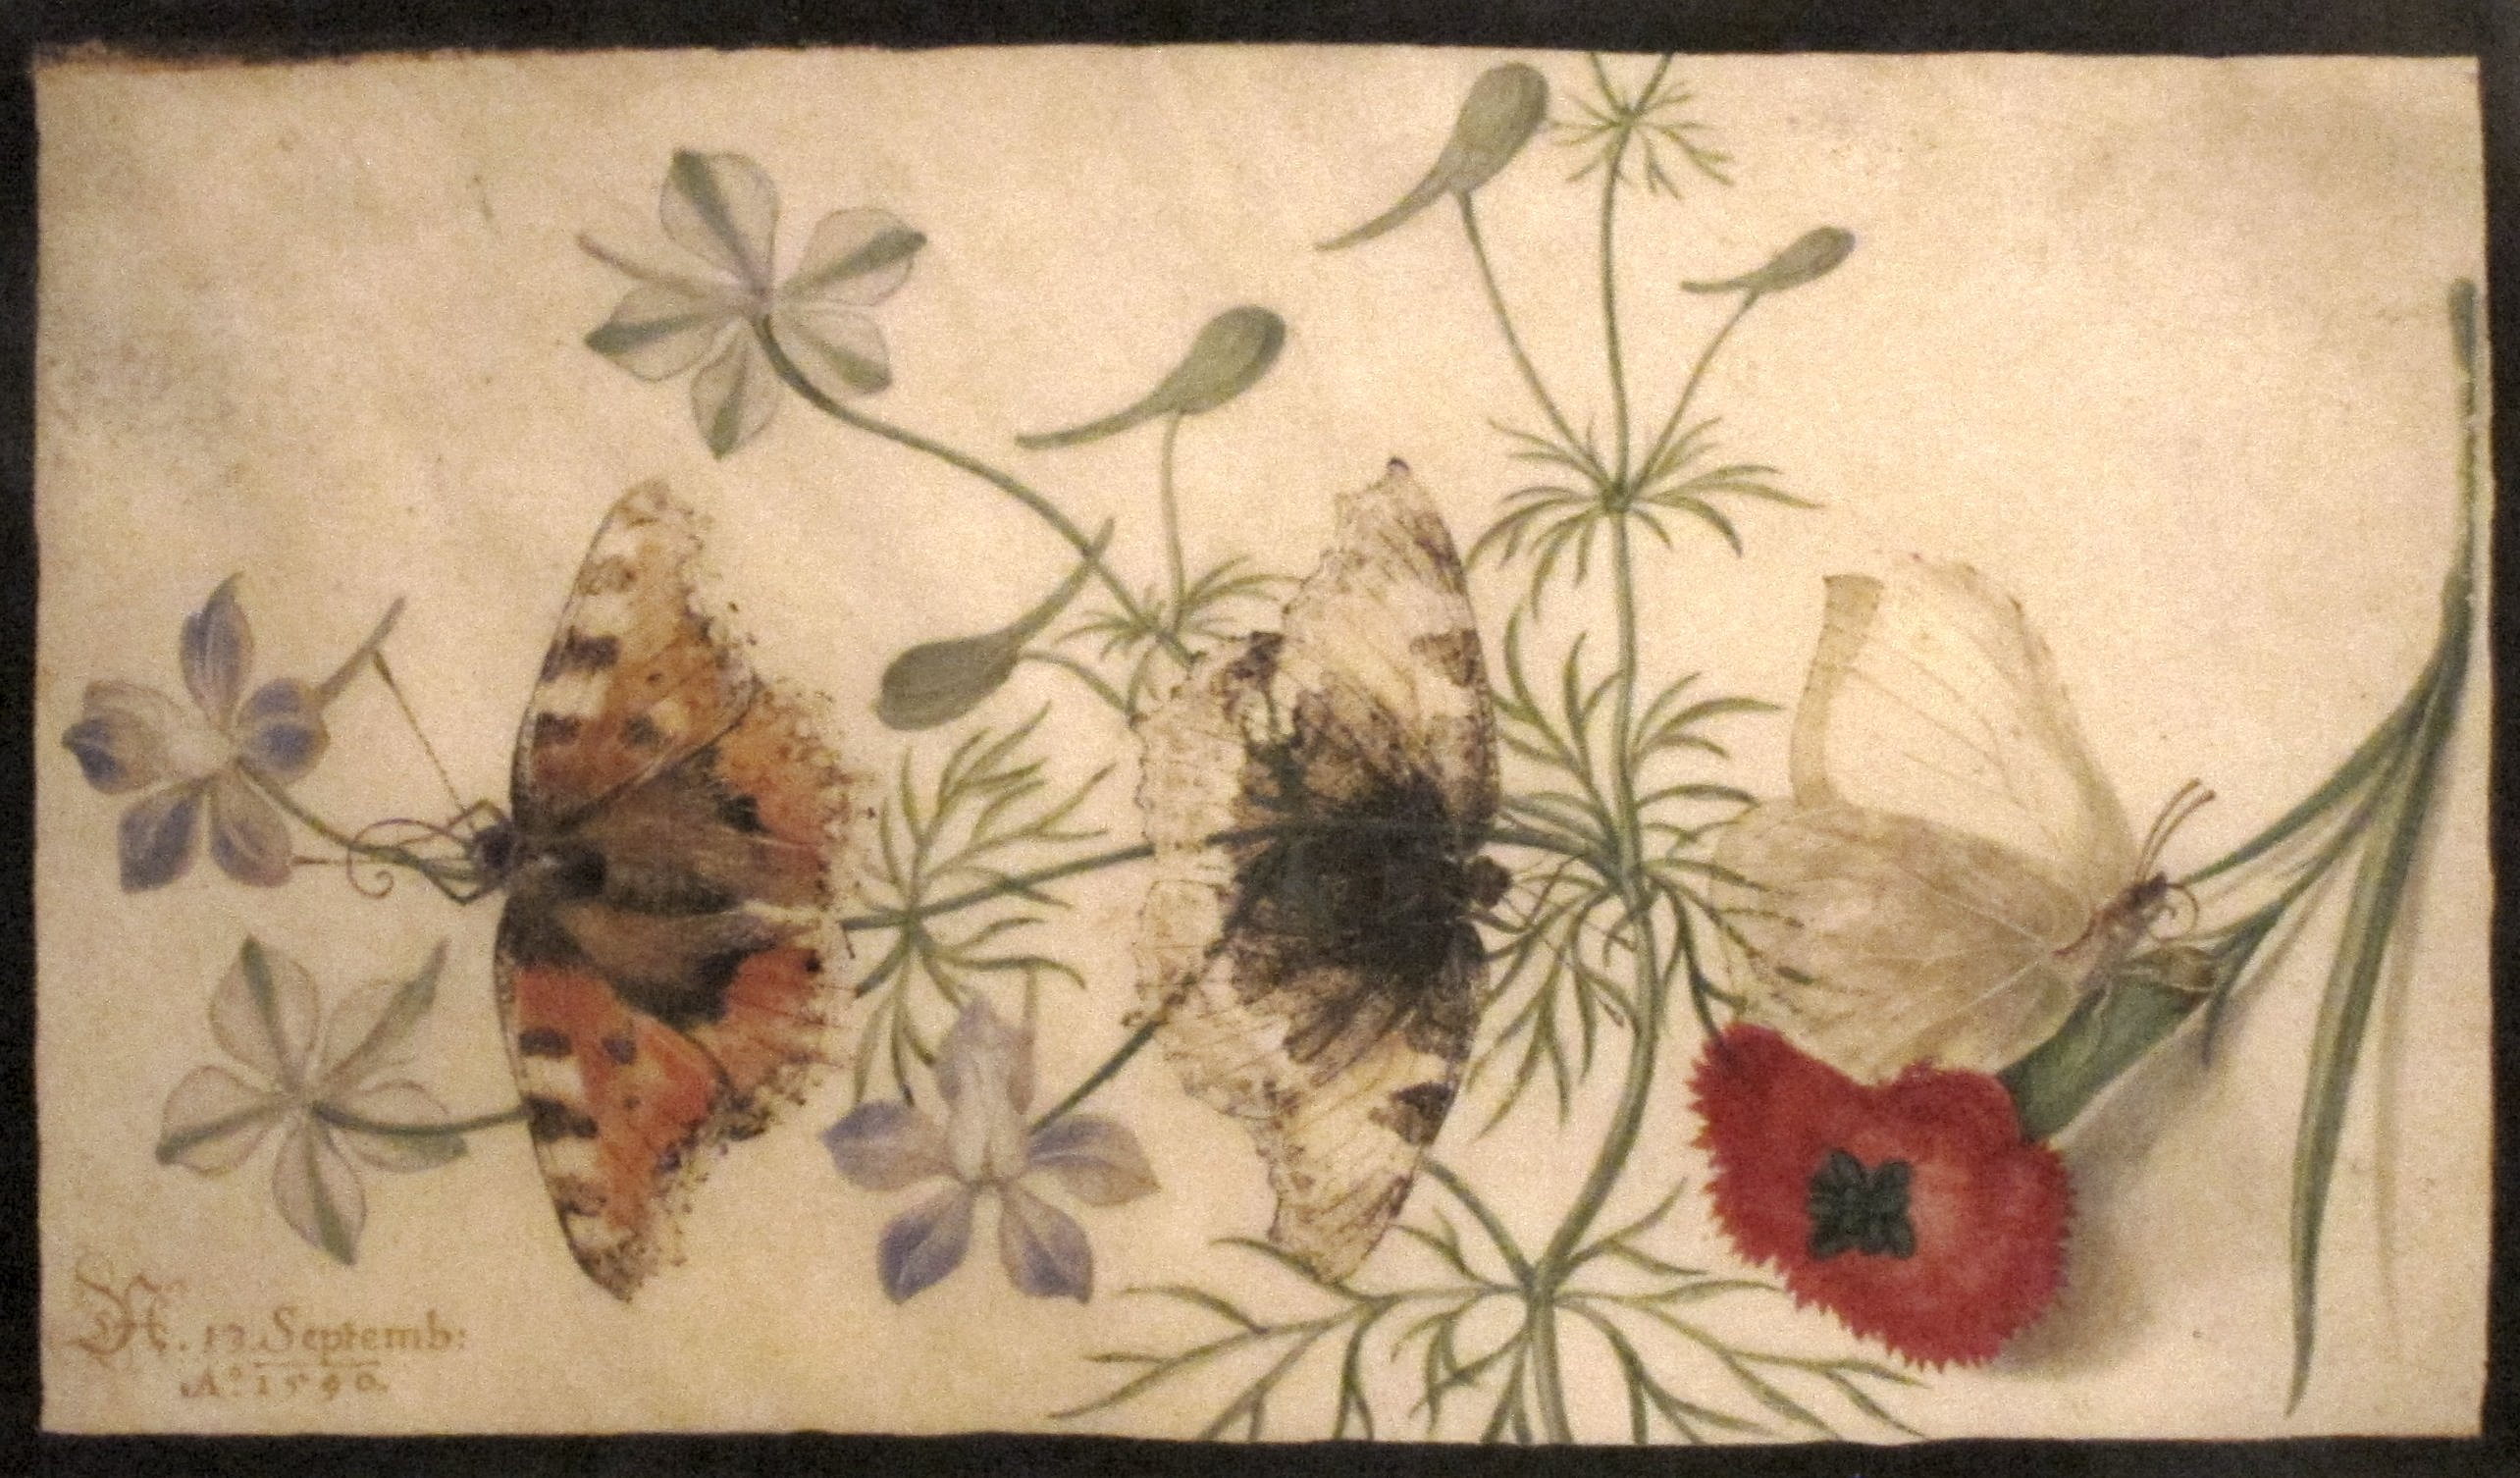 History of watercolor art - Joris Hoefnagel Studies Of Flowers And Butterflies Watercolor On Parchment 1590